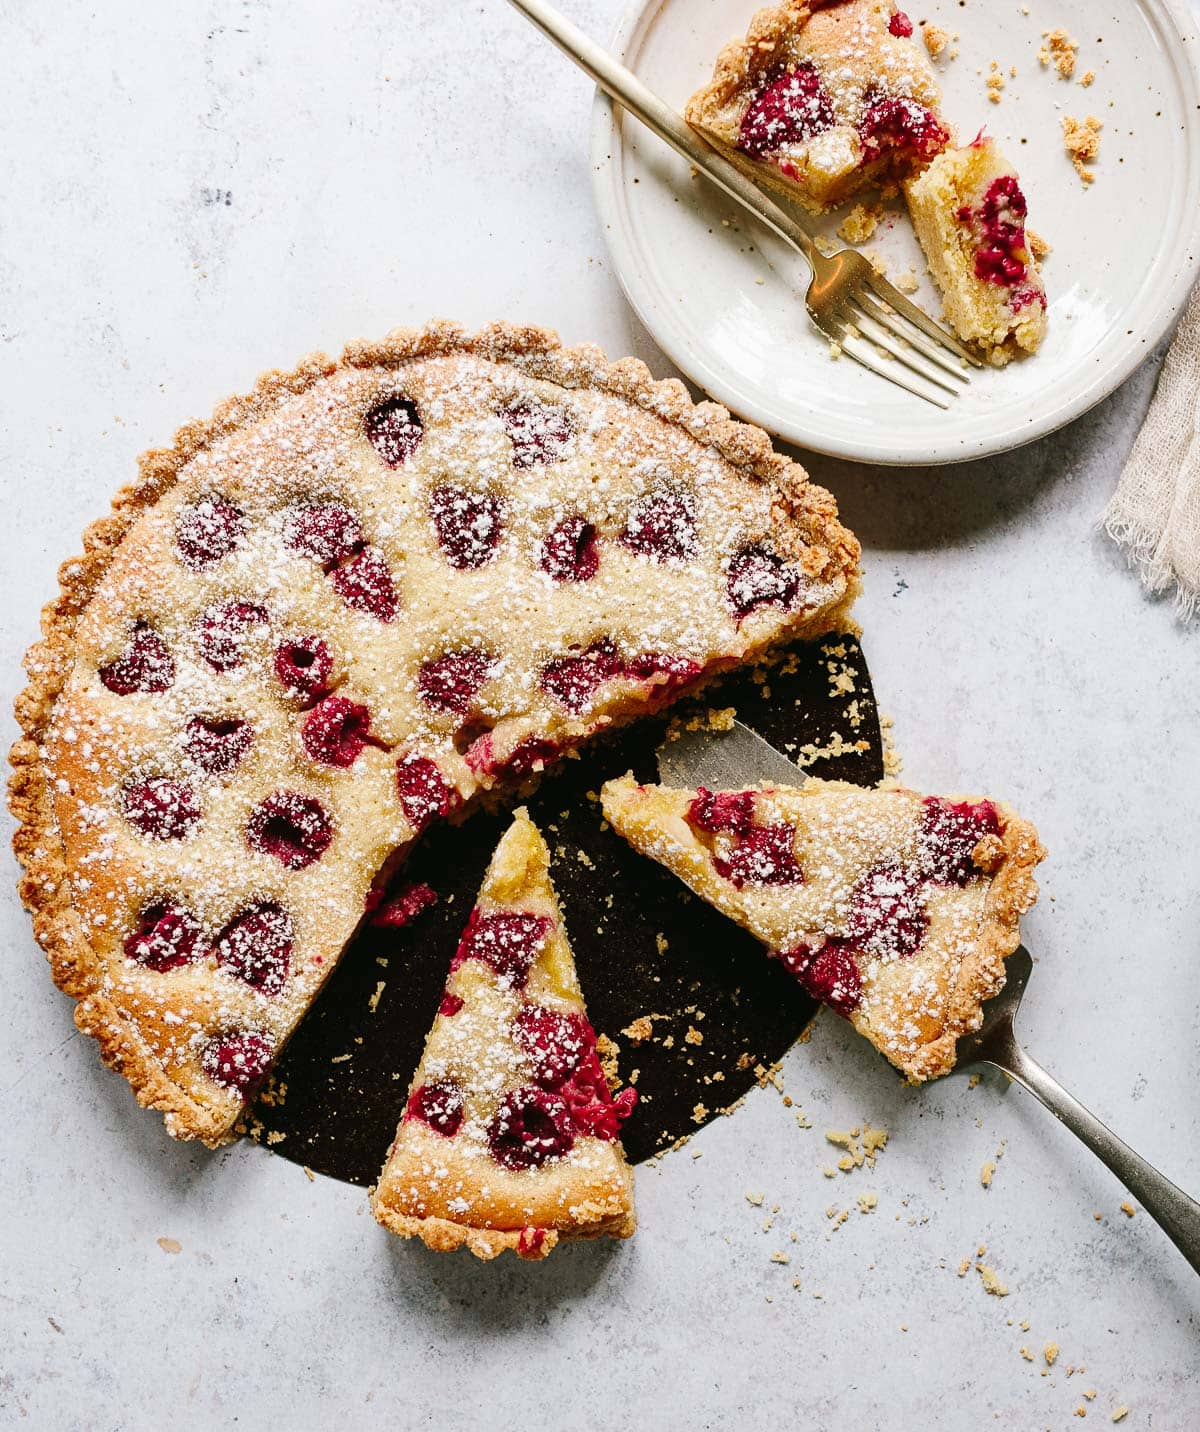 A photo of sliced raspberry almond tart filled with baked frangipane cream and fresh raspberries, with serving plate and two forks.